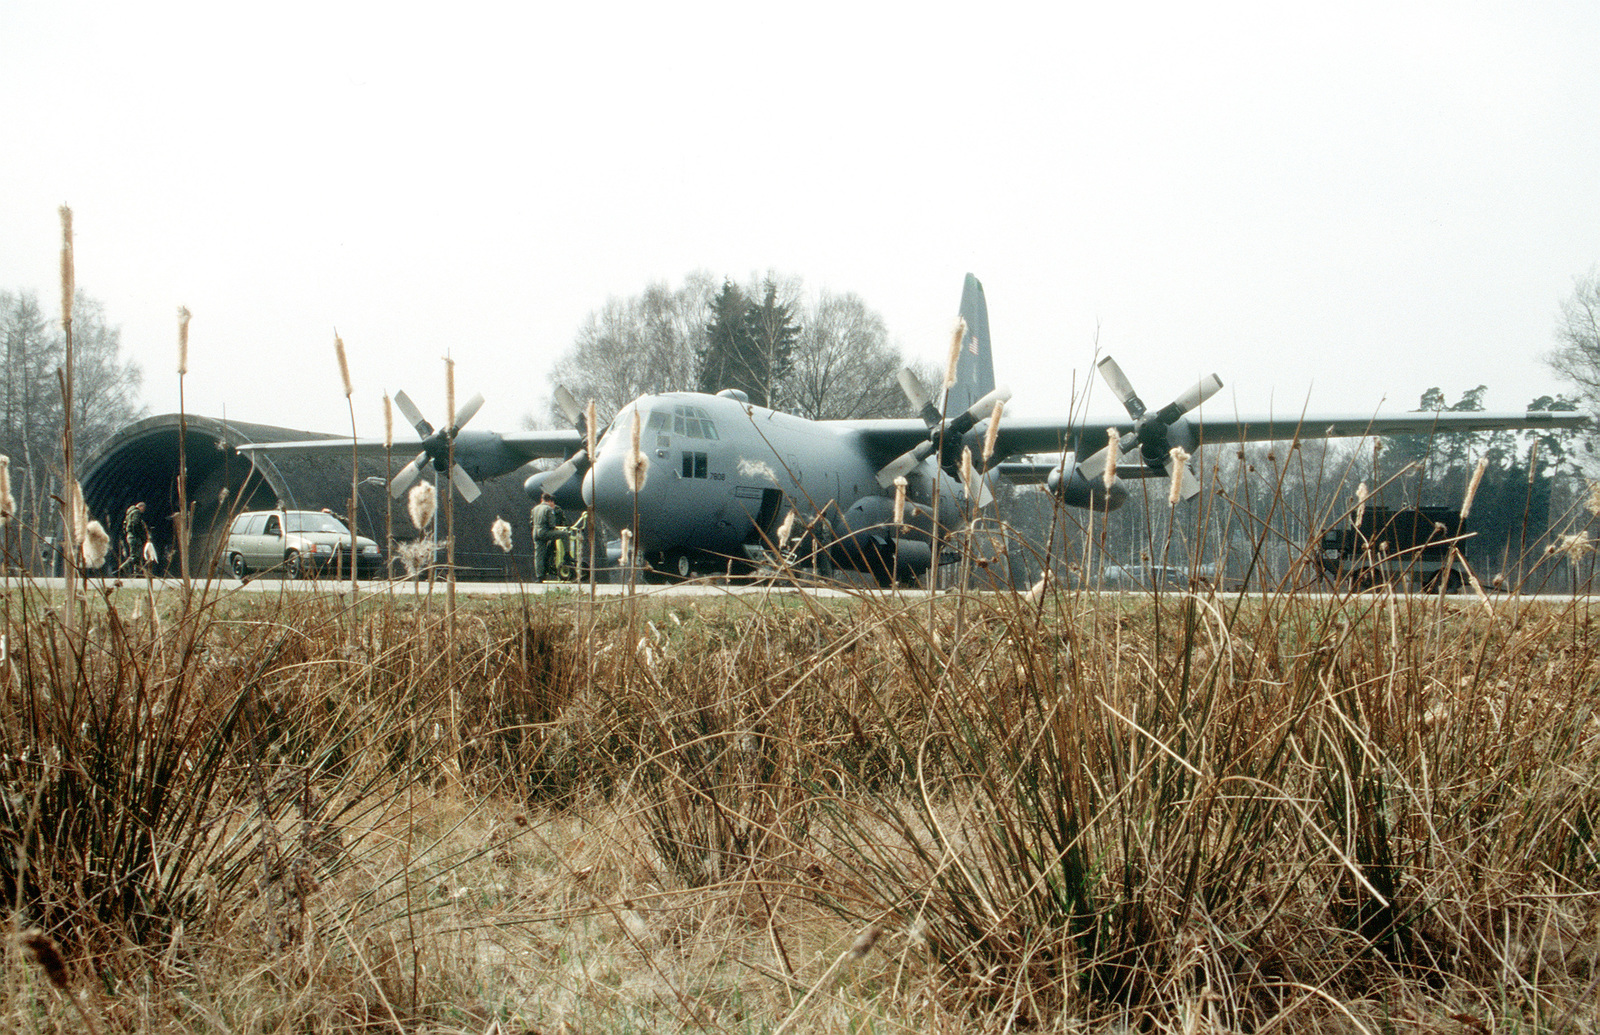 The 61st Airlift Squadron, Little Rock Air Force Base, Ark. is providing inter-theater transport capability to the former Yugoslavia region in support of the operation. The crew prepares the C-130 Hercules aircraft for takeoff from their temporary home of Ramstein Air Base, Germany